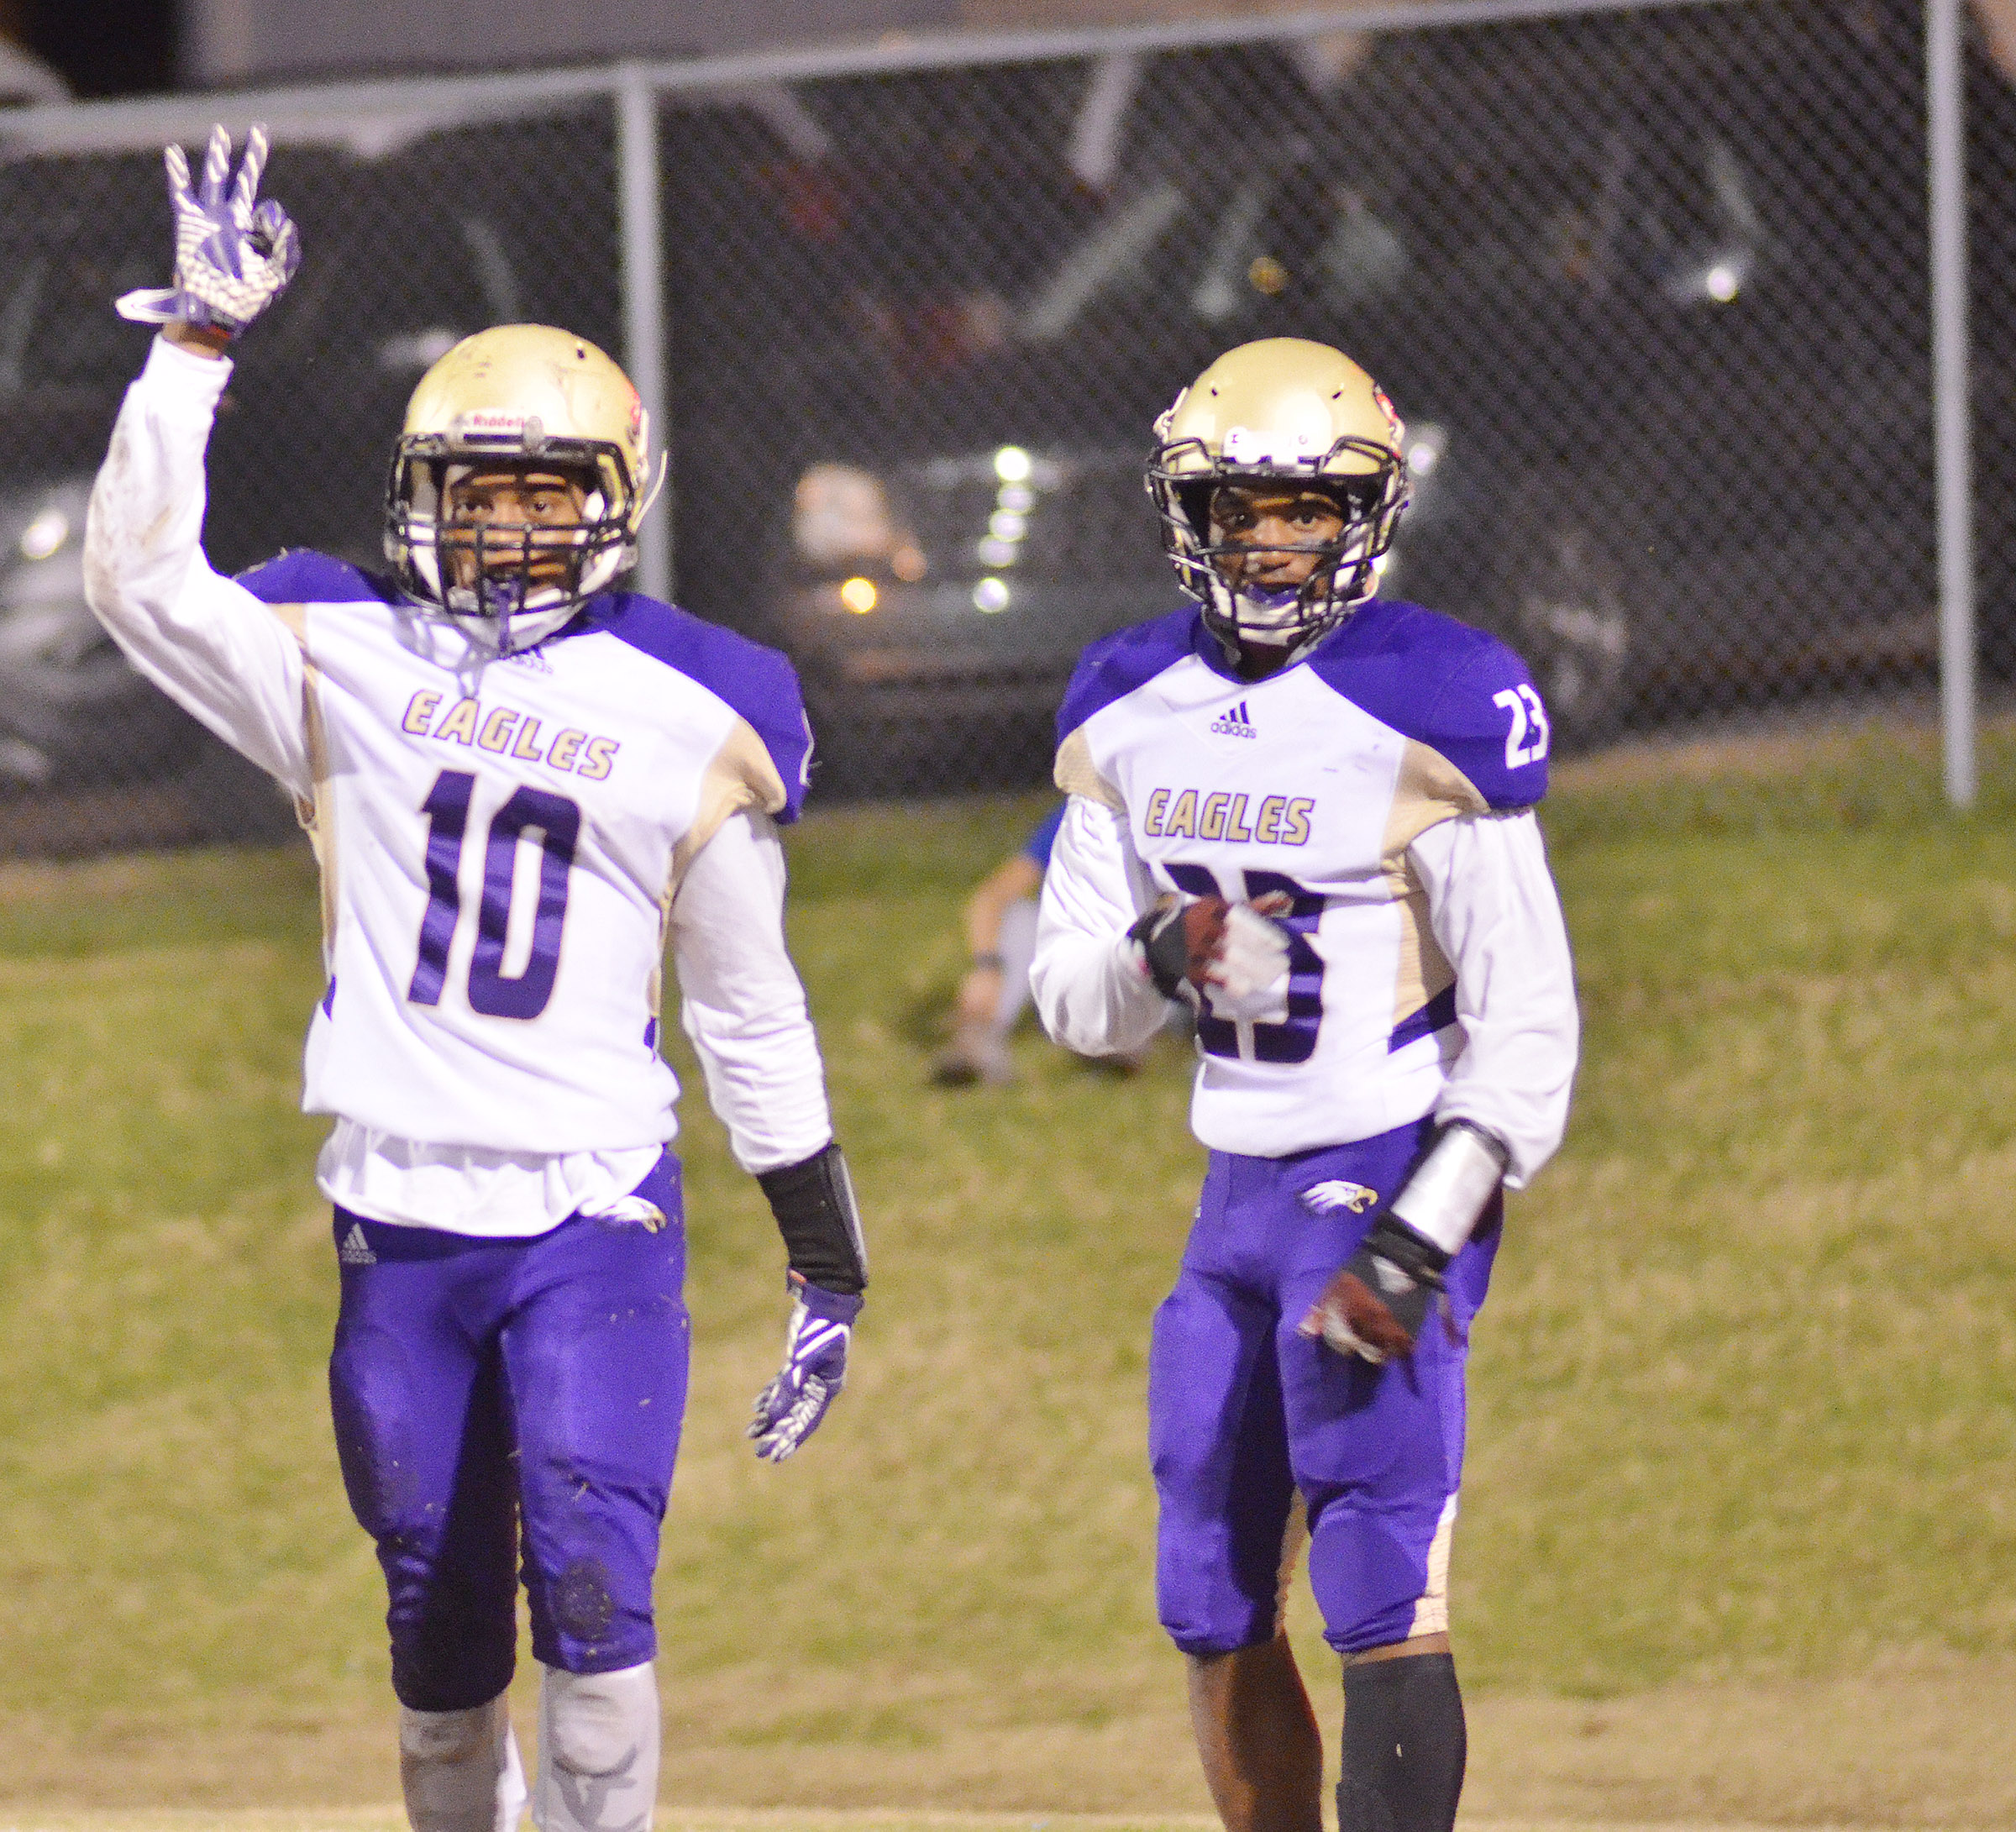 CHS seniors Devonte Cubit, at left, and Tyrion Taylor celebrate Cubit's third touchdown of the night.